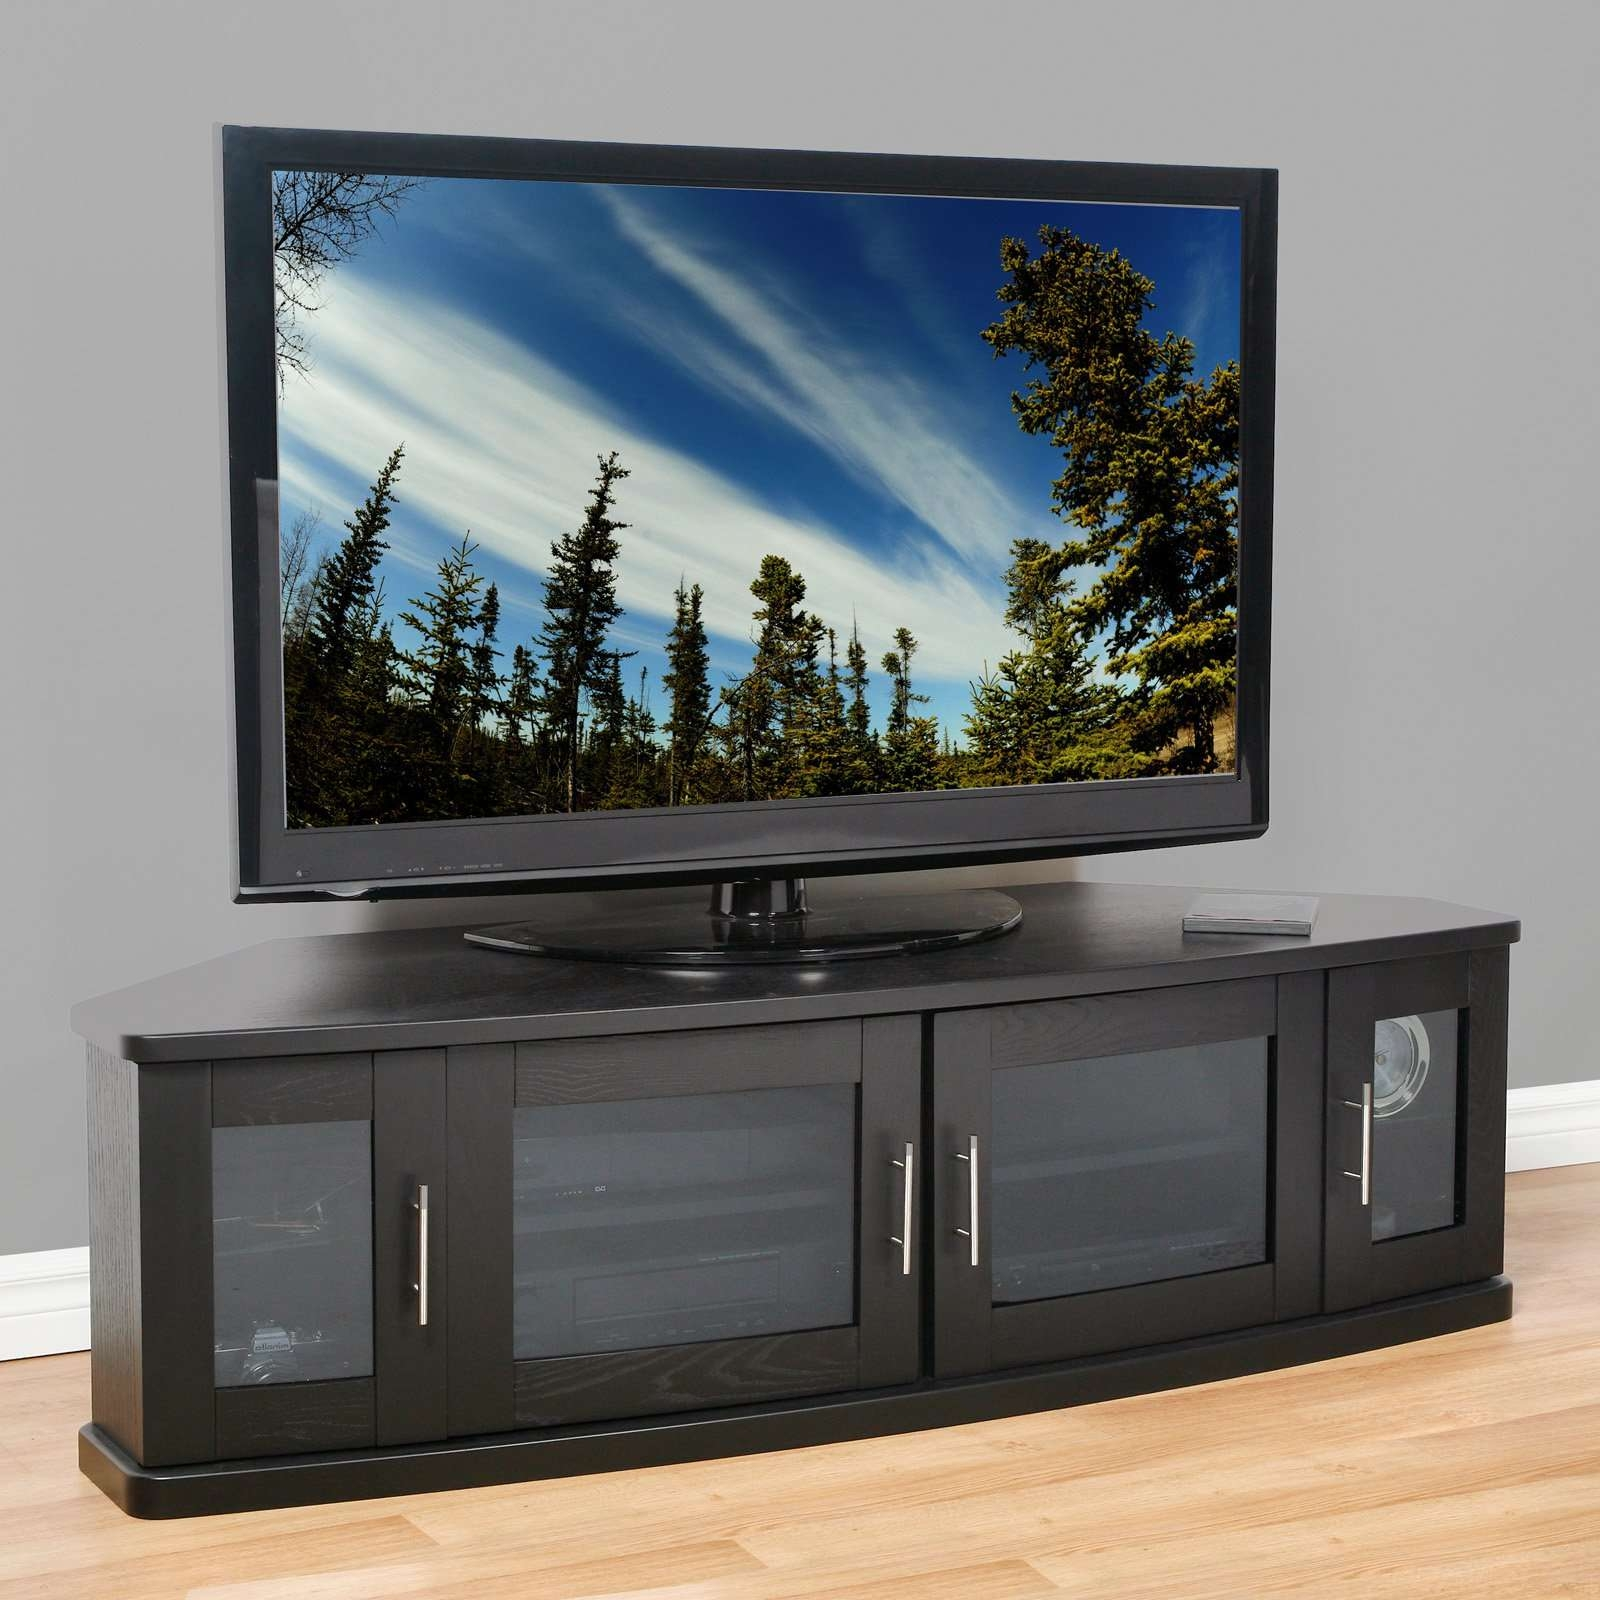 Large Corner Tv Cabinet With 4 Glass Doors And Silver Handle Regarding Glass Tv Cabinets With Doors (View 9 of 20)